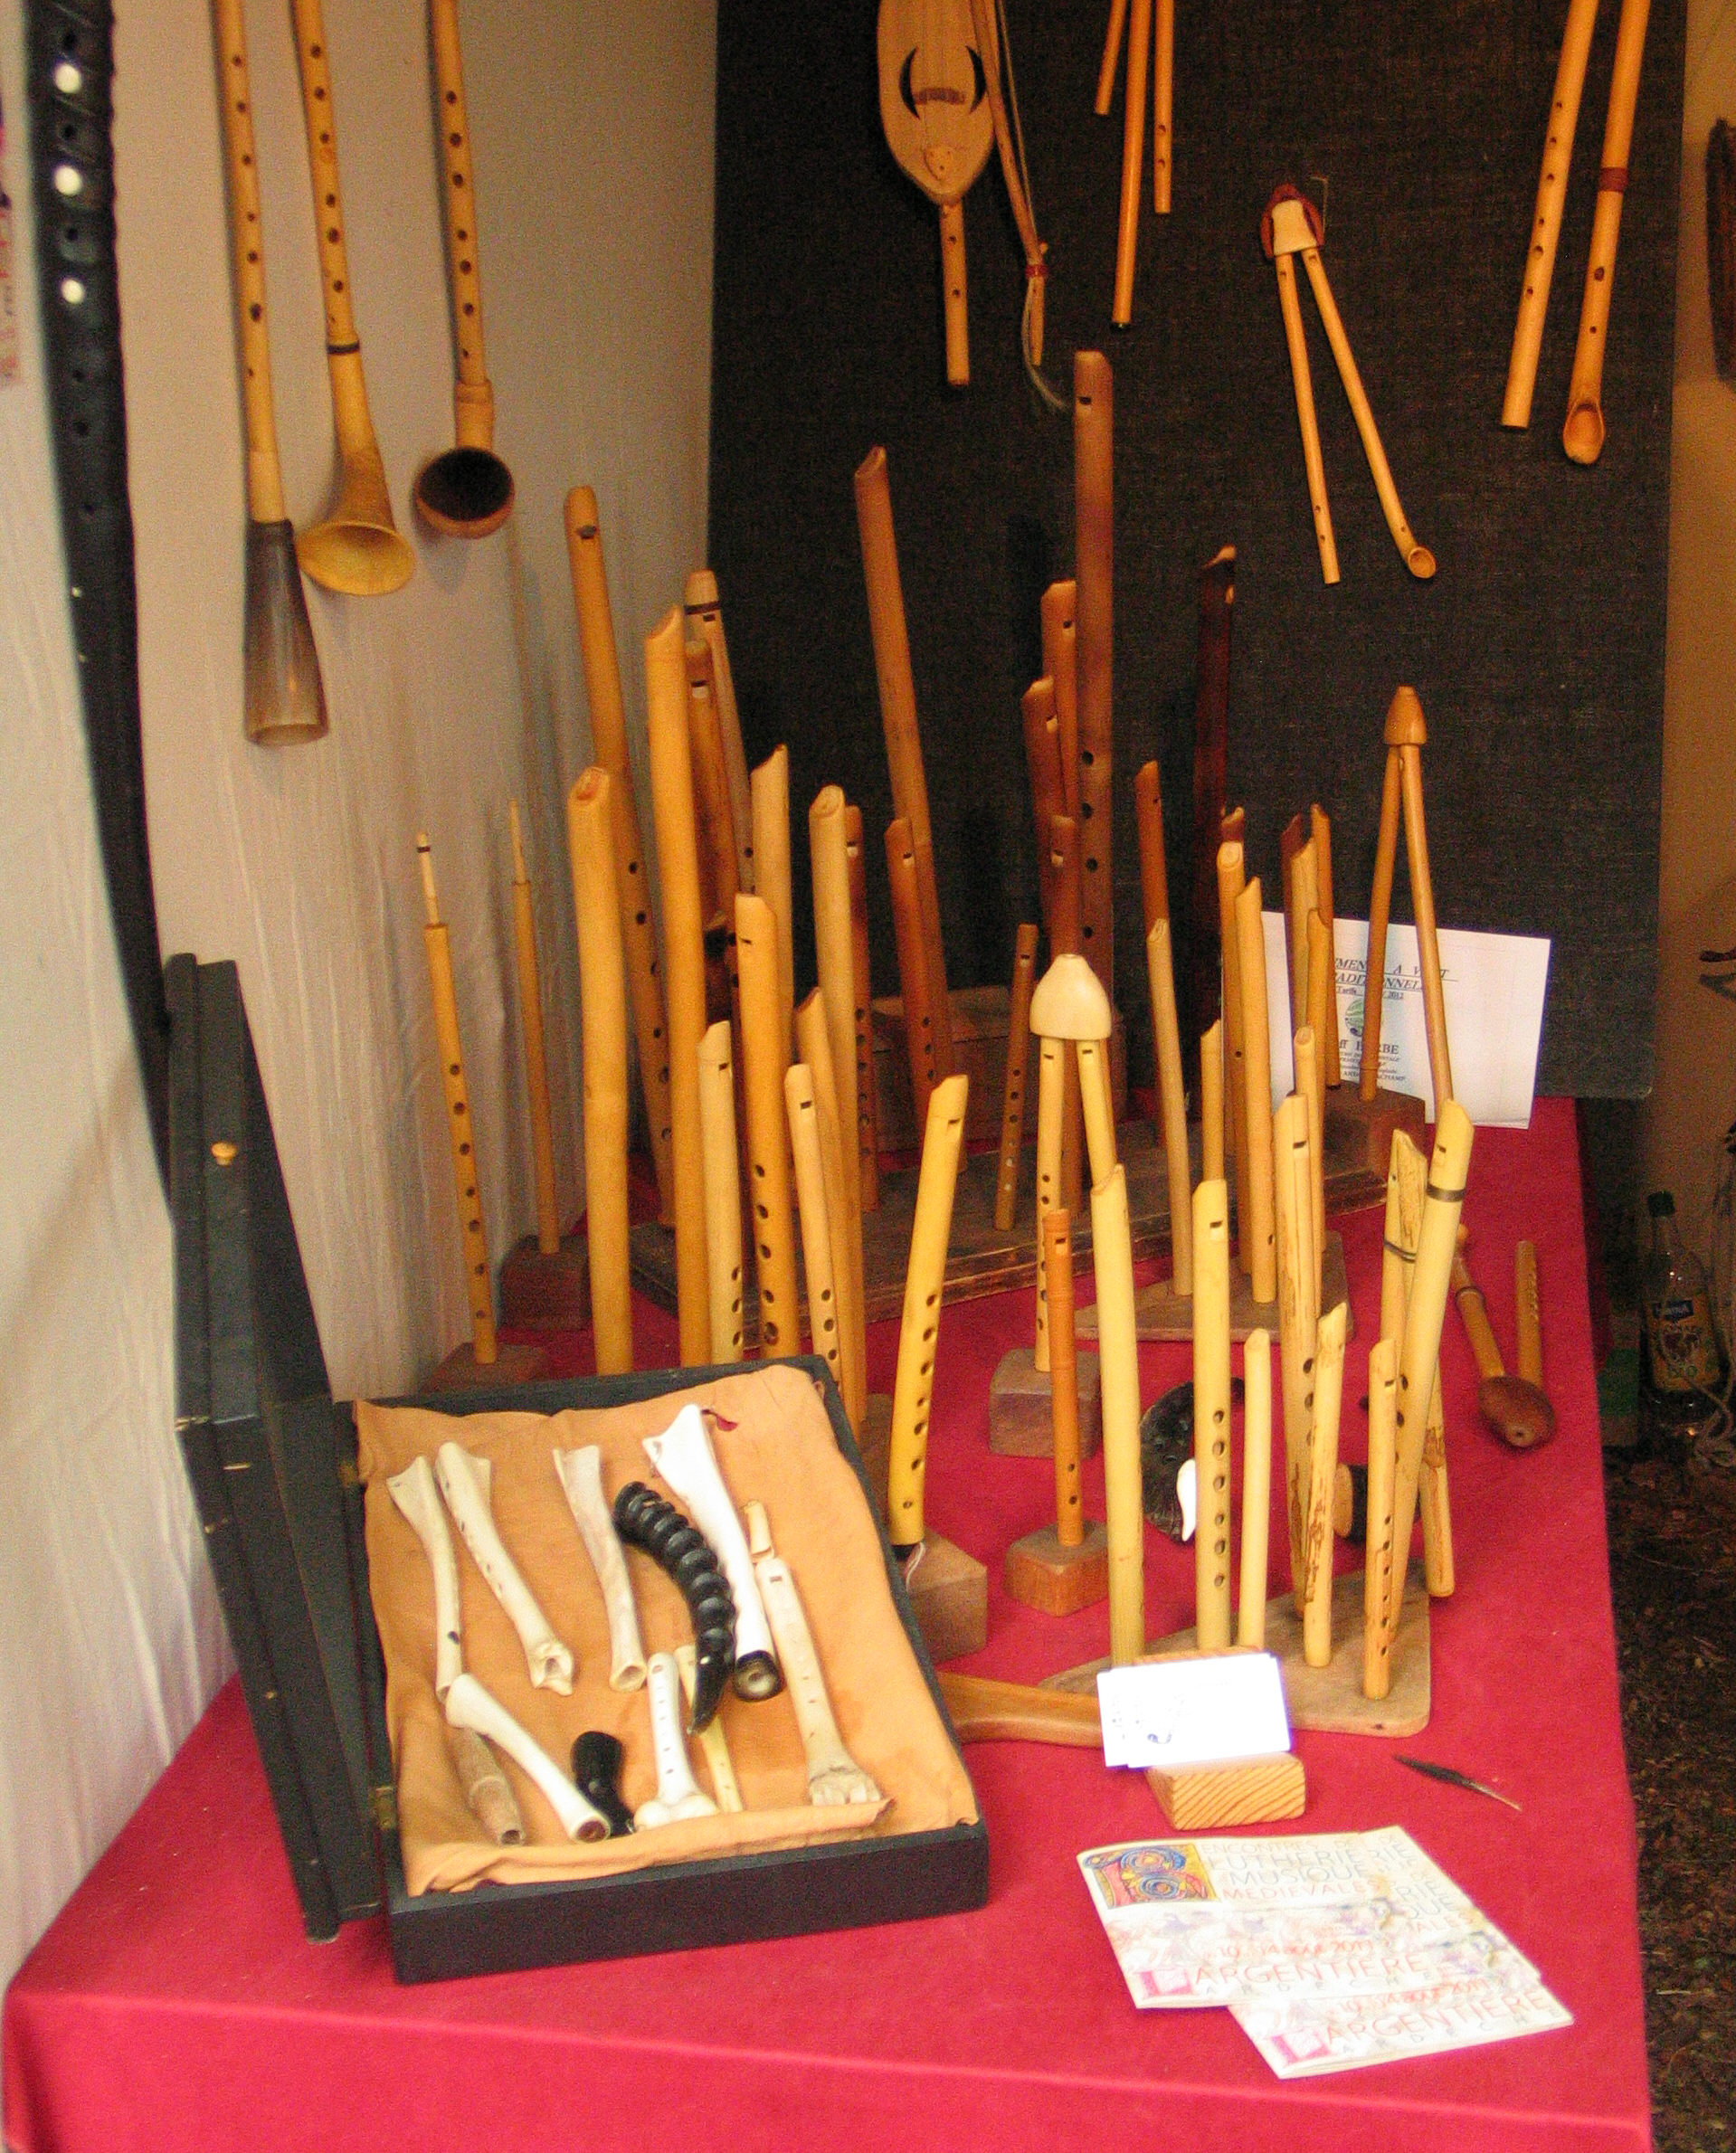 Rencontres luthiers chateau d'ars